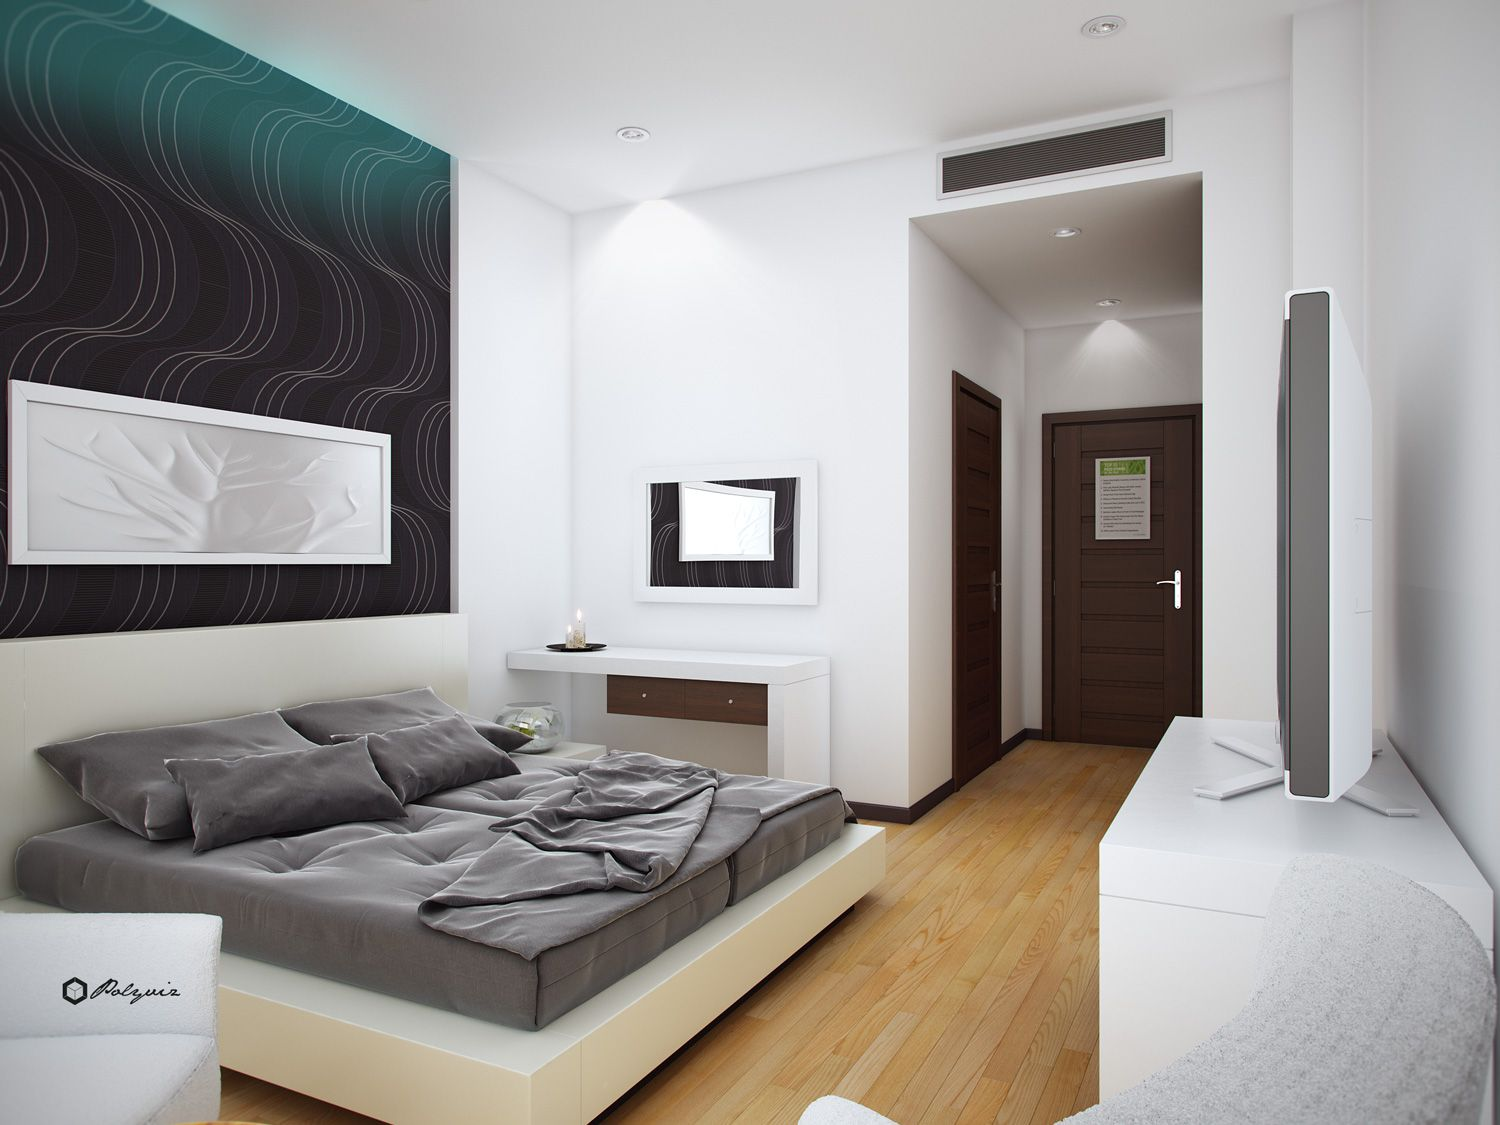 Modern hotel room design google search room design for Modern small bedroom interior design